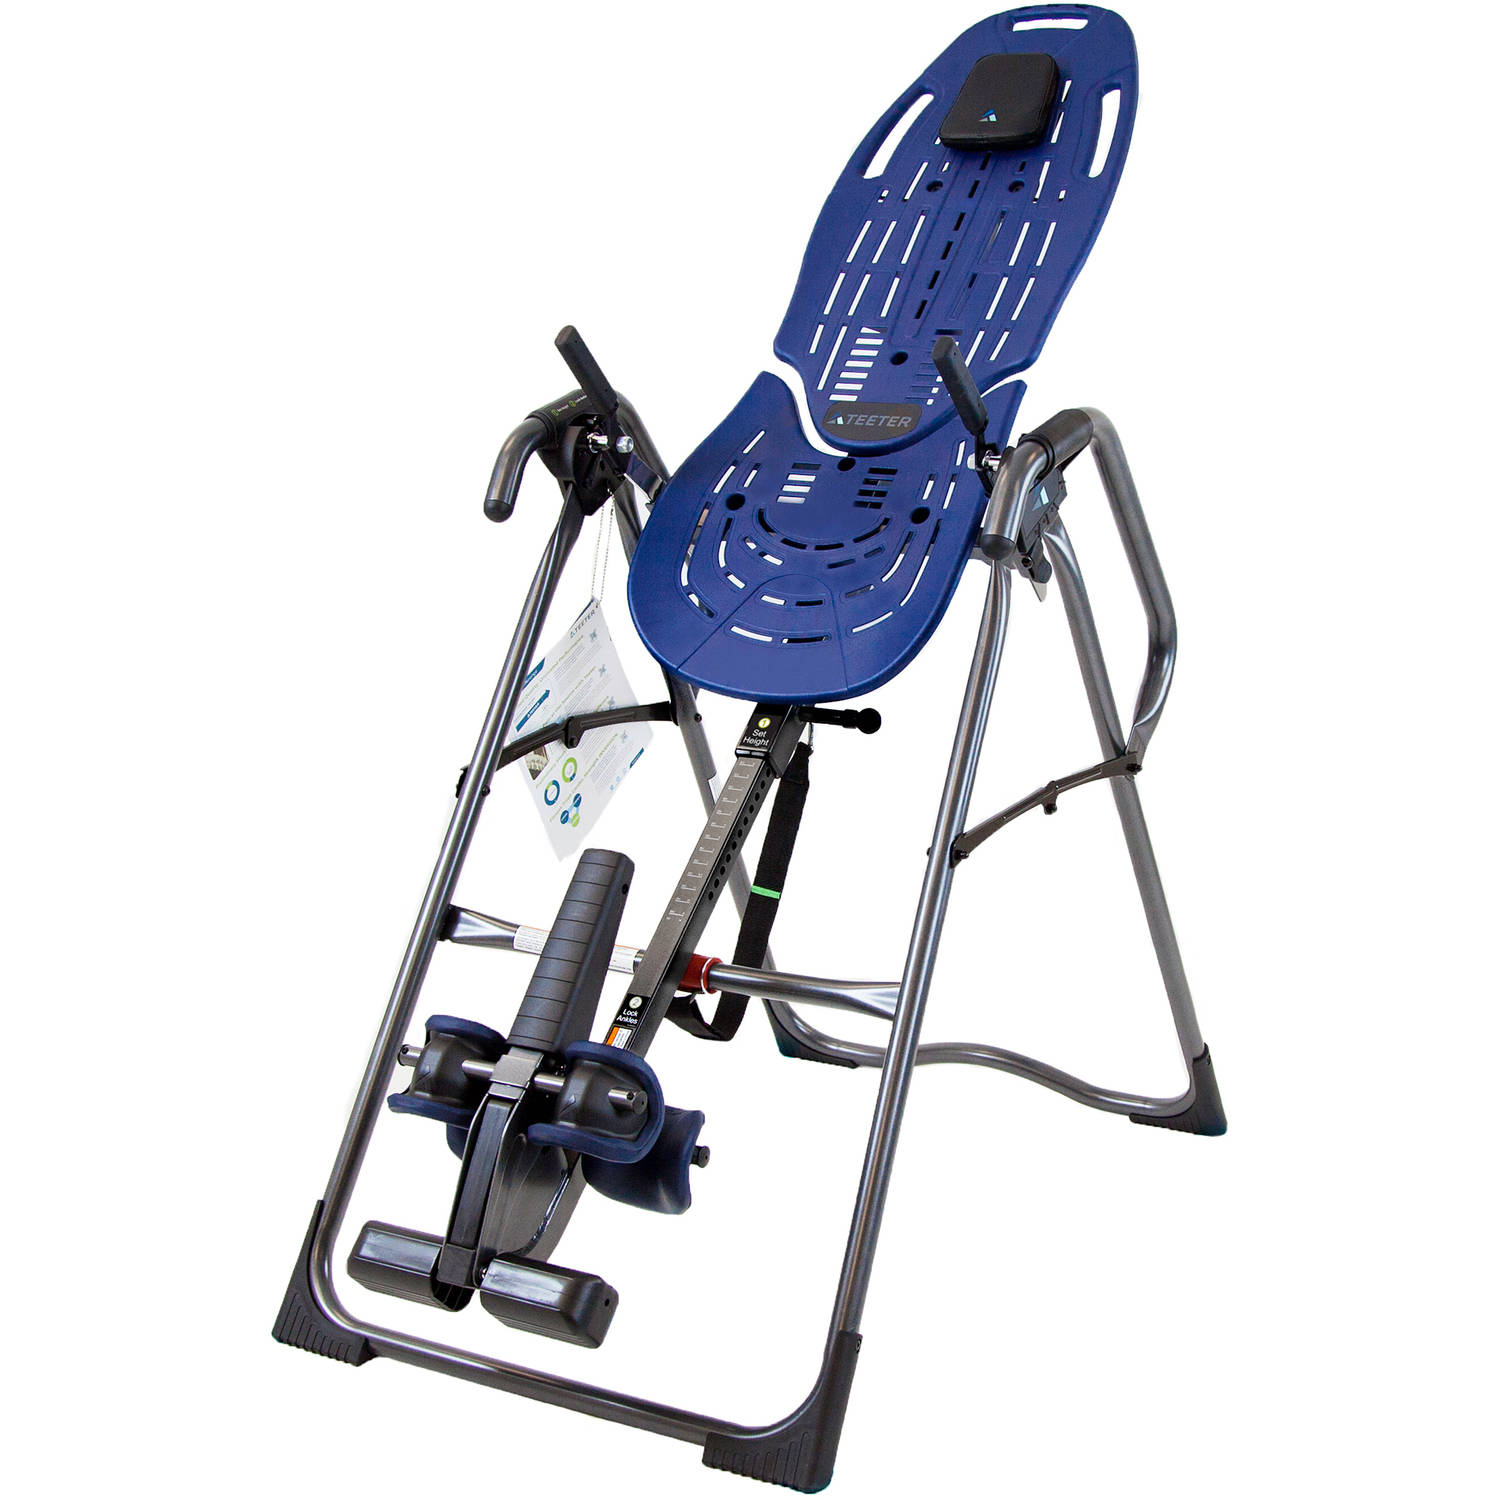 Teeter EP-960 Inversion Table with Back Pain Relief DVD by Overstock